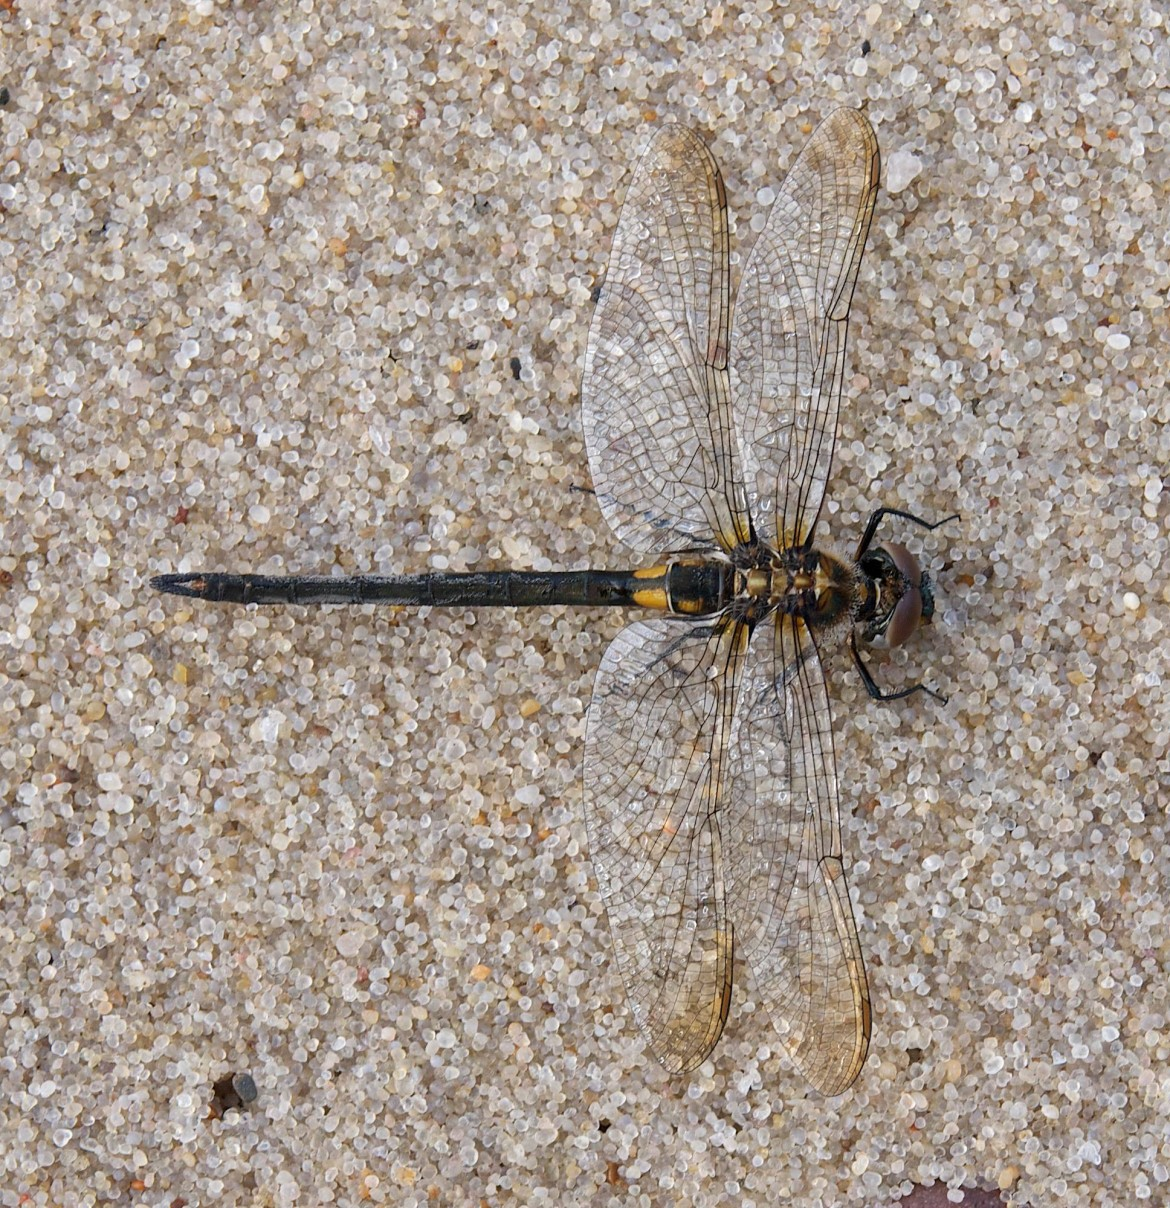 Kennedy's emerald dragonfly. Image: David Marvin